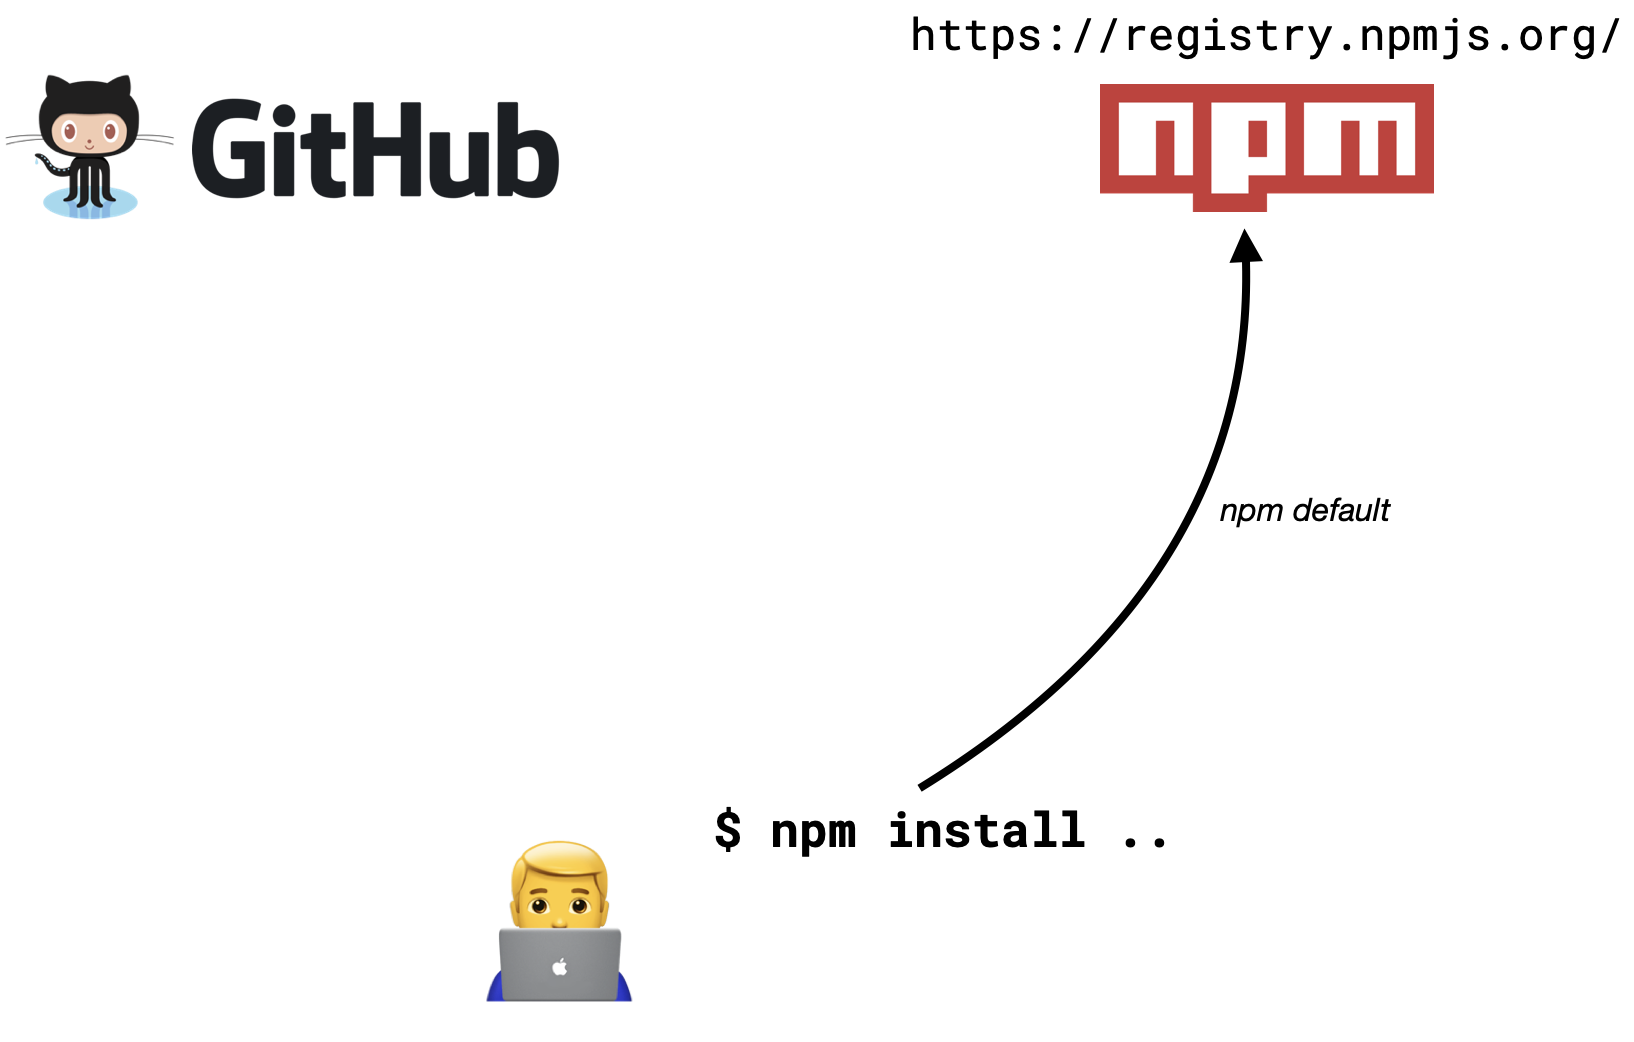 npm uses npmjs registry by default